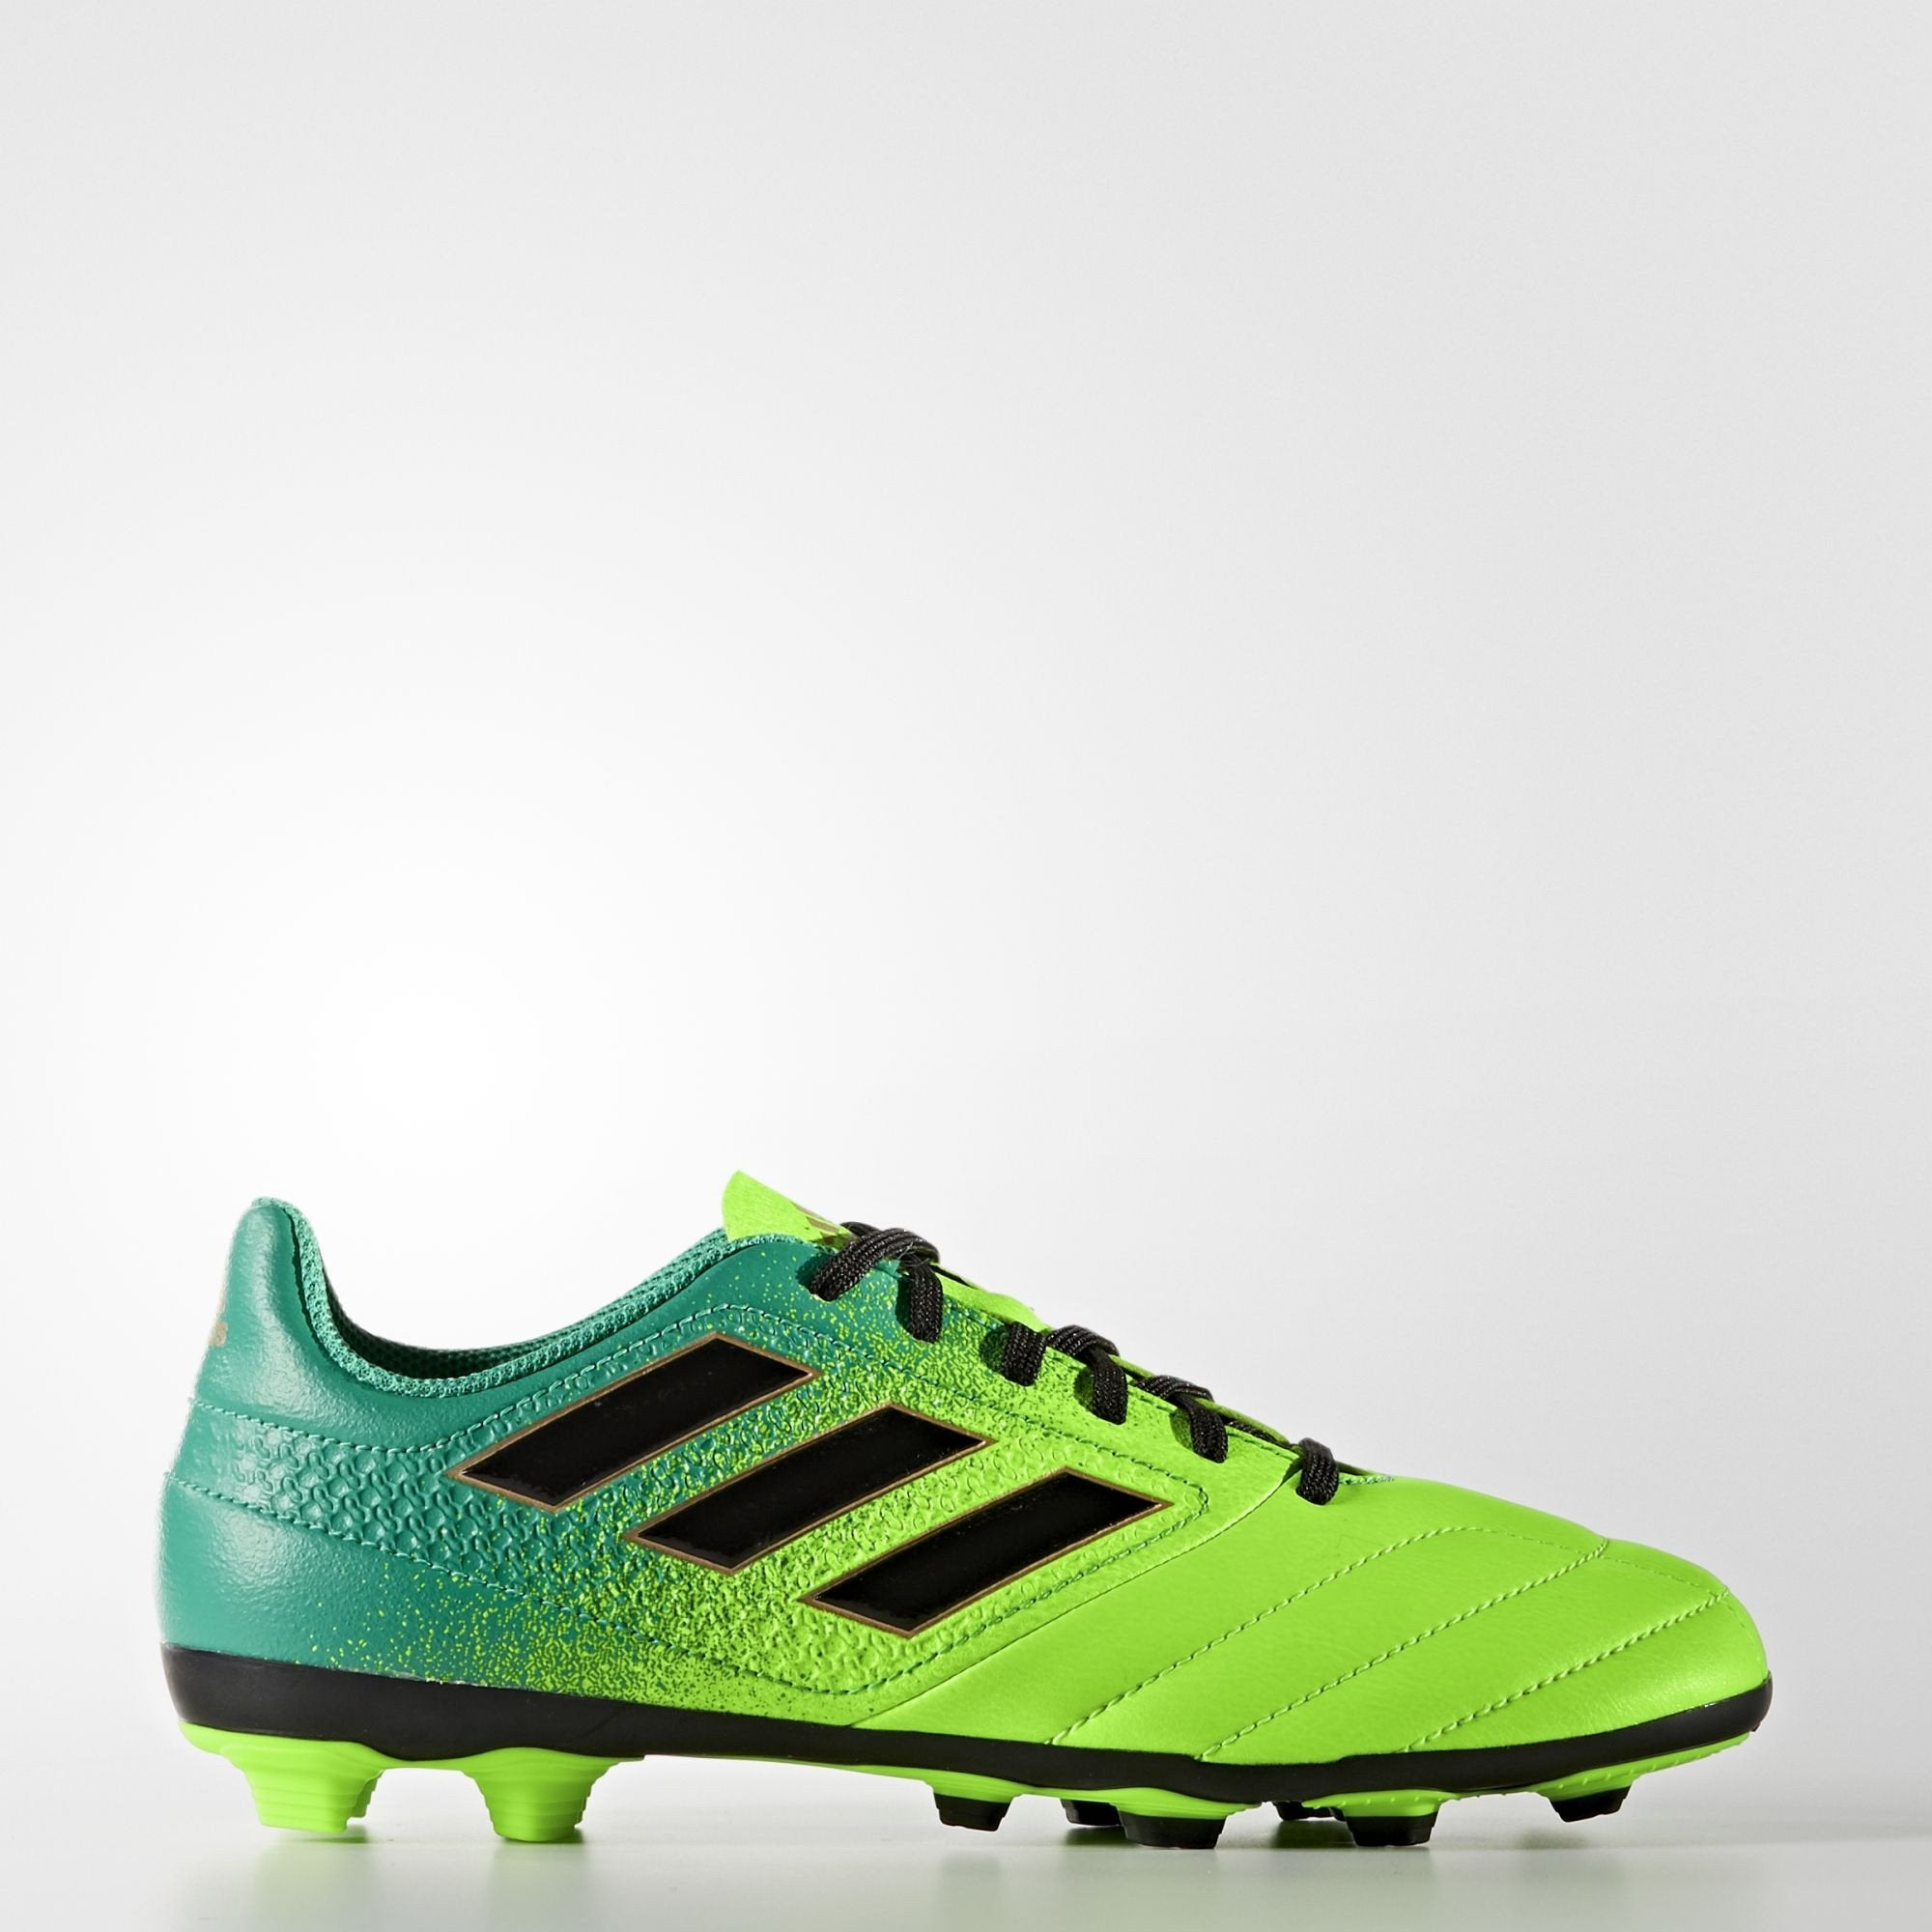 9327dc0f3 adidas ACE 17.4 Flexible Ground Boots – Branded Feet